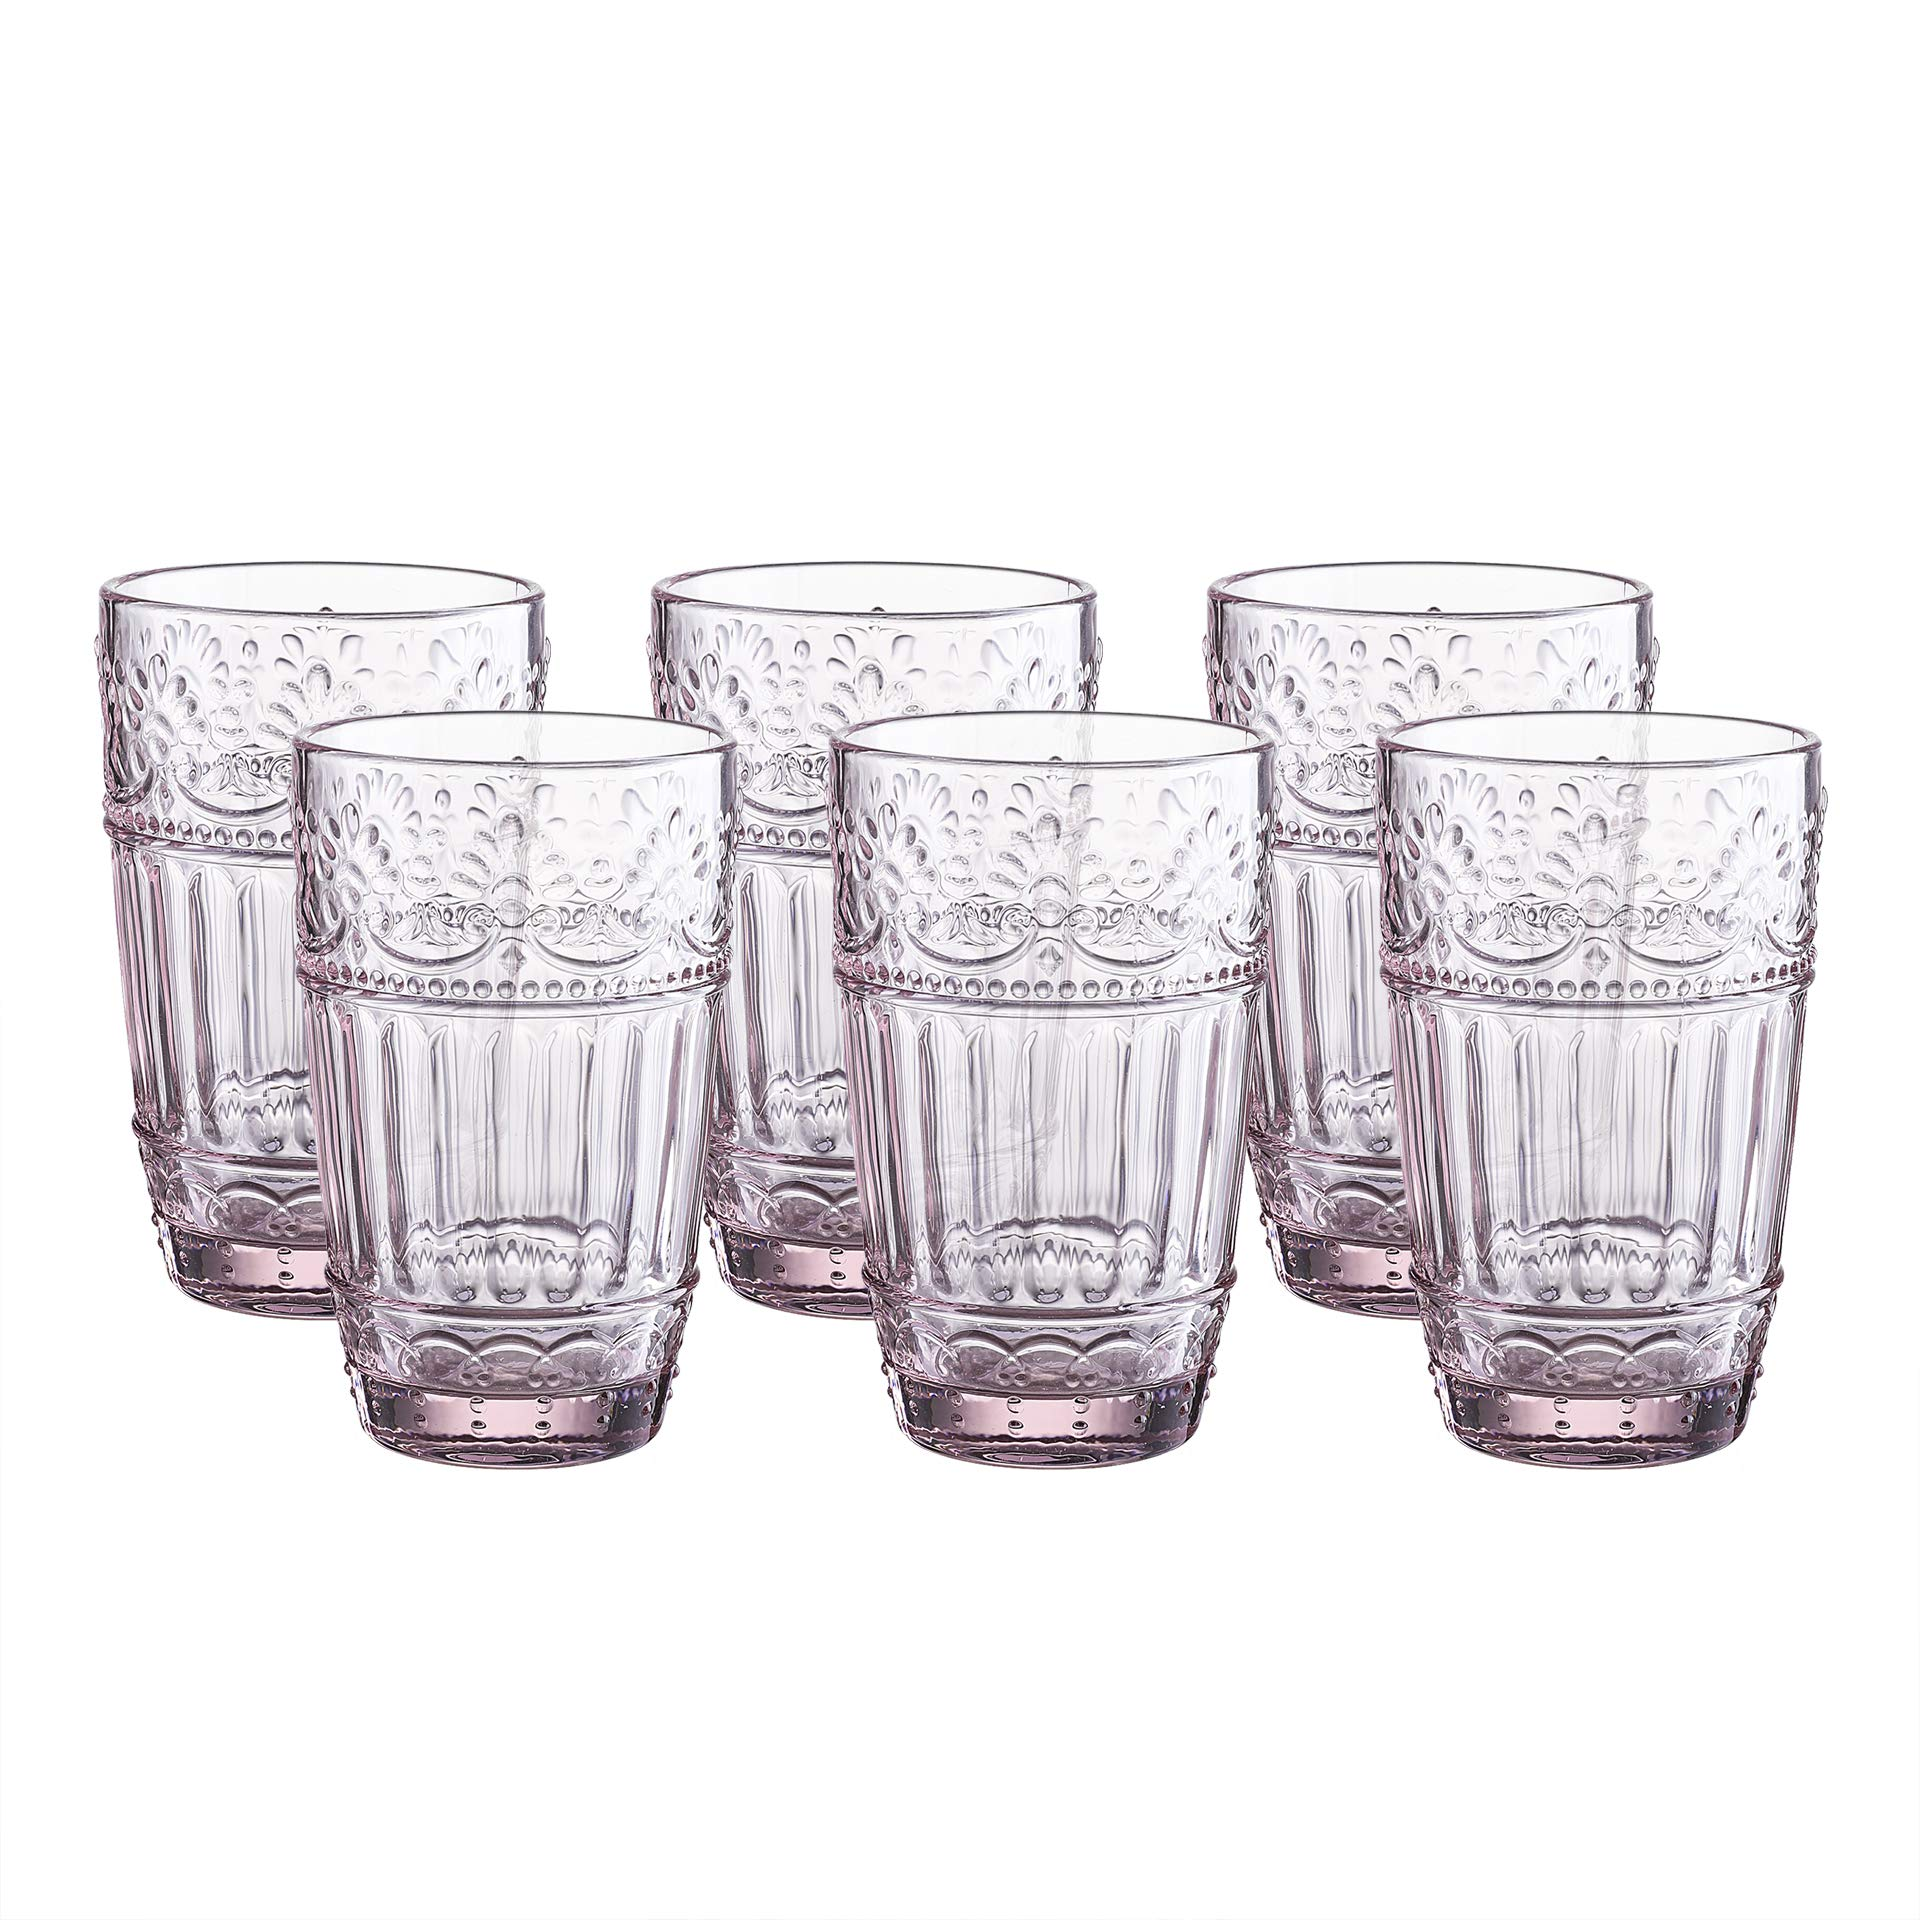 Glass Tumblers,12 Ounce Embossed Design Drinking Glasses Set of 6 (Pink)